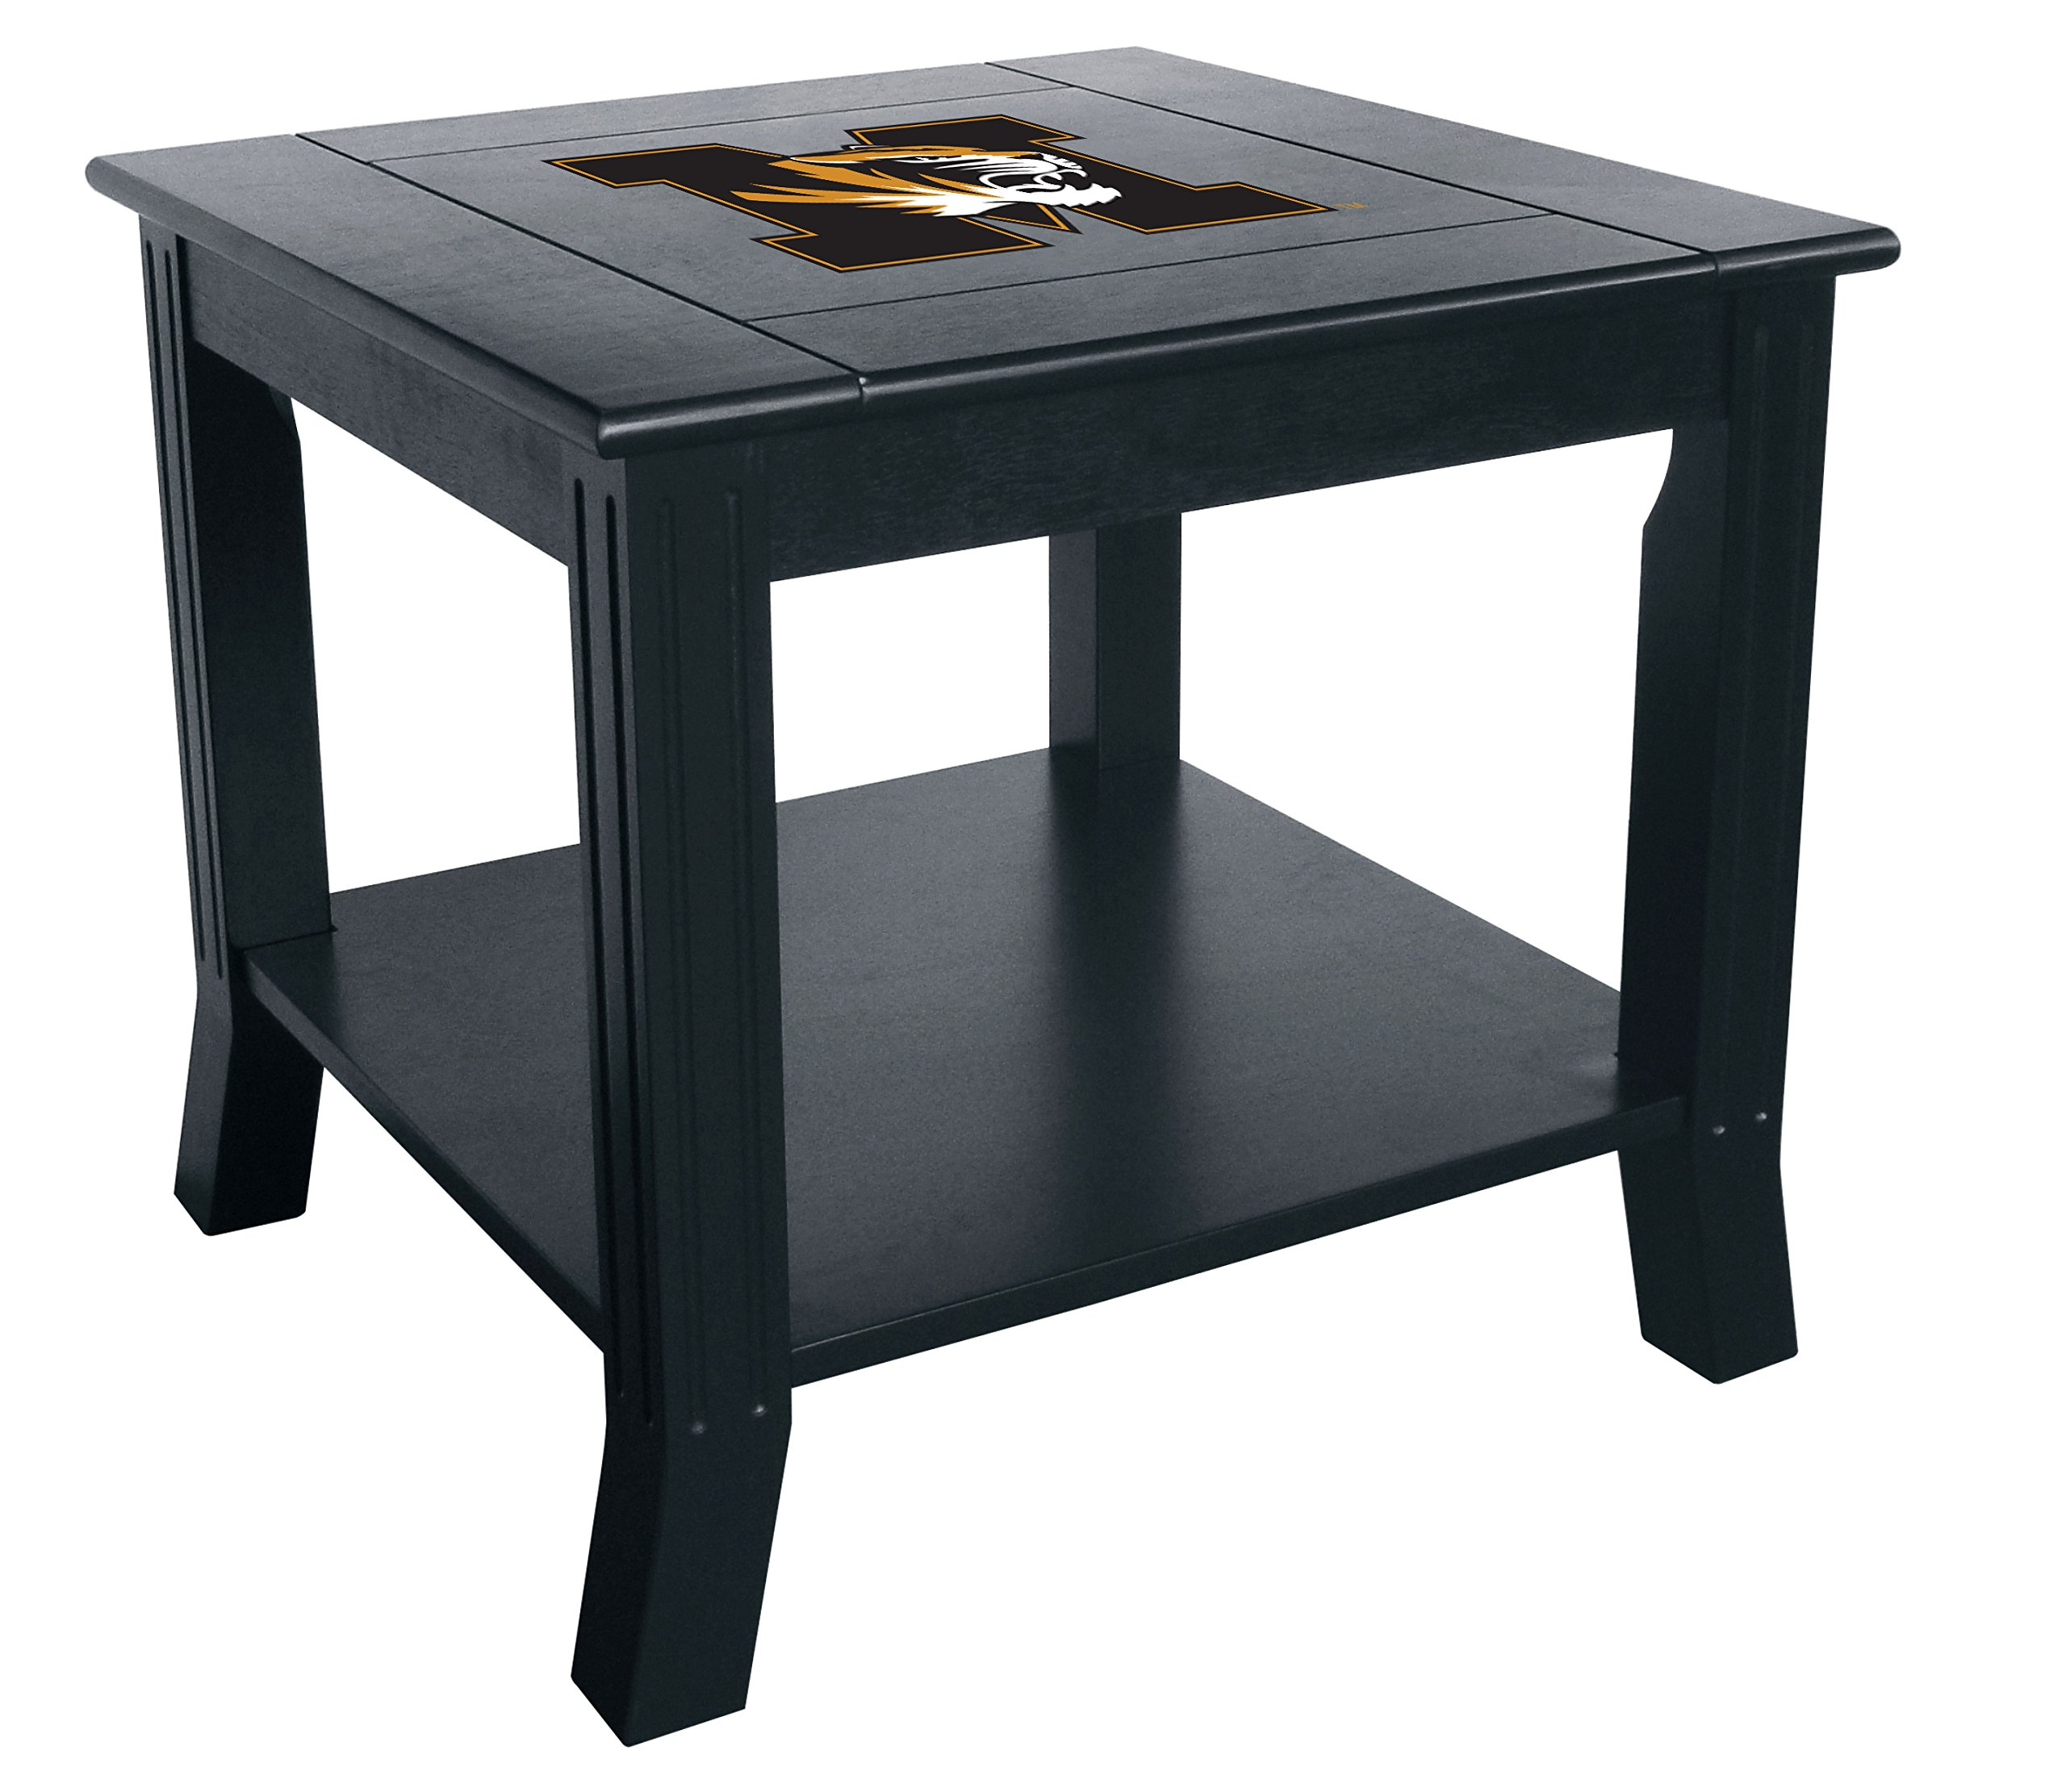 Imperial Officially Licensed NCAA Furniture: Hardwood Side/End Table, Missouri Tigers by Imperial